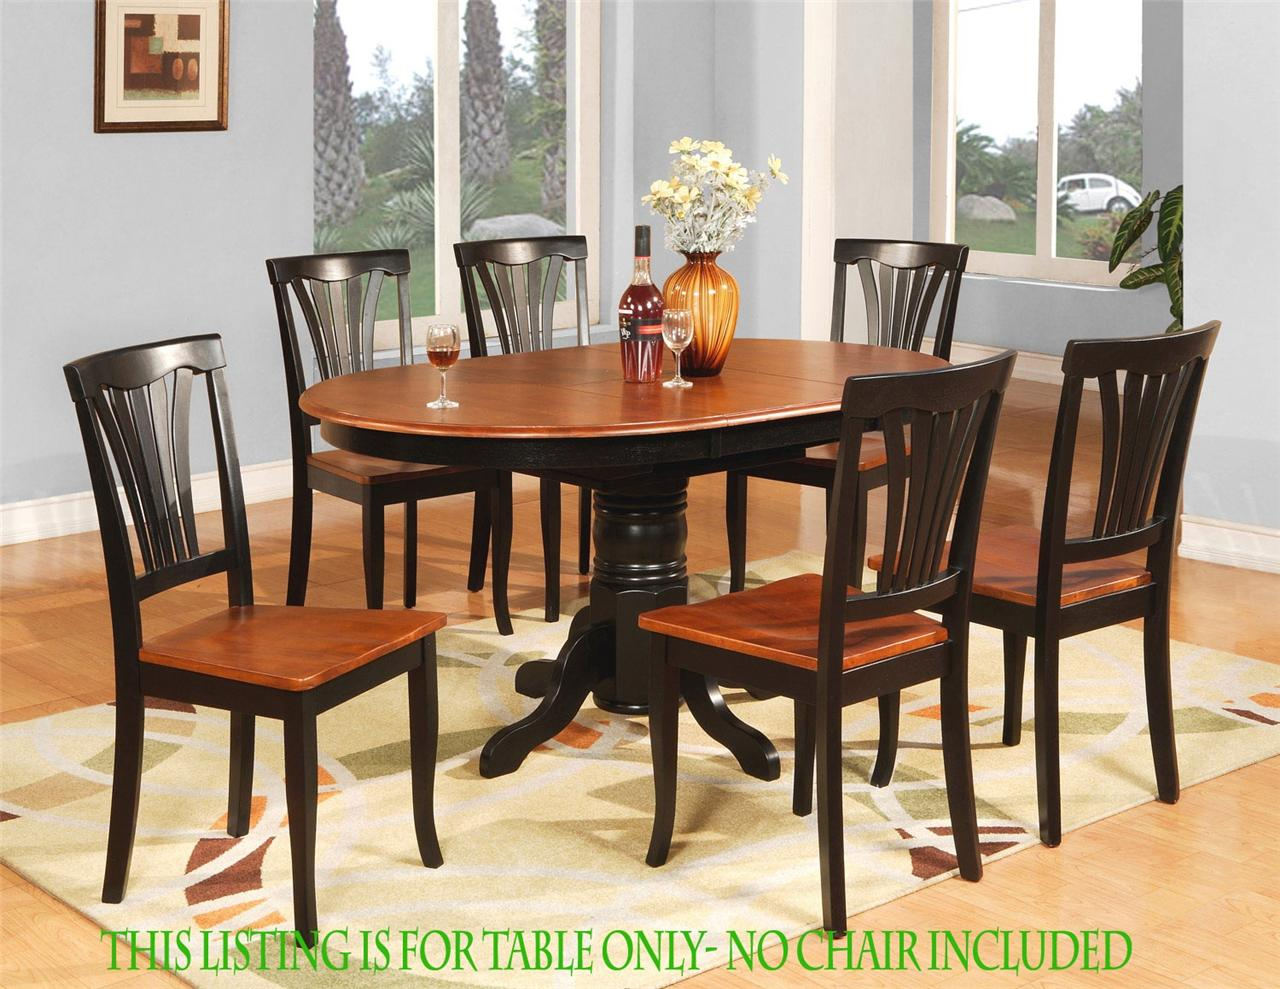 Oval dinette kitchen dining room table only 42 x 60 with for Kitchen dining sets